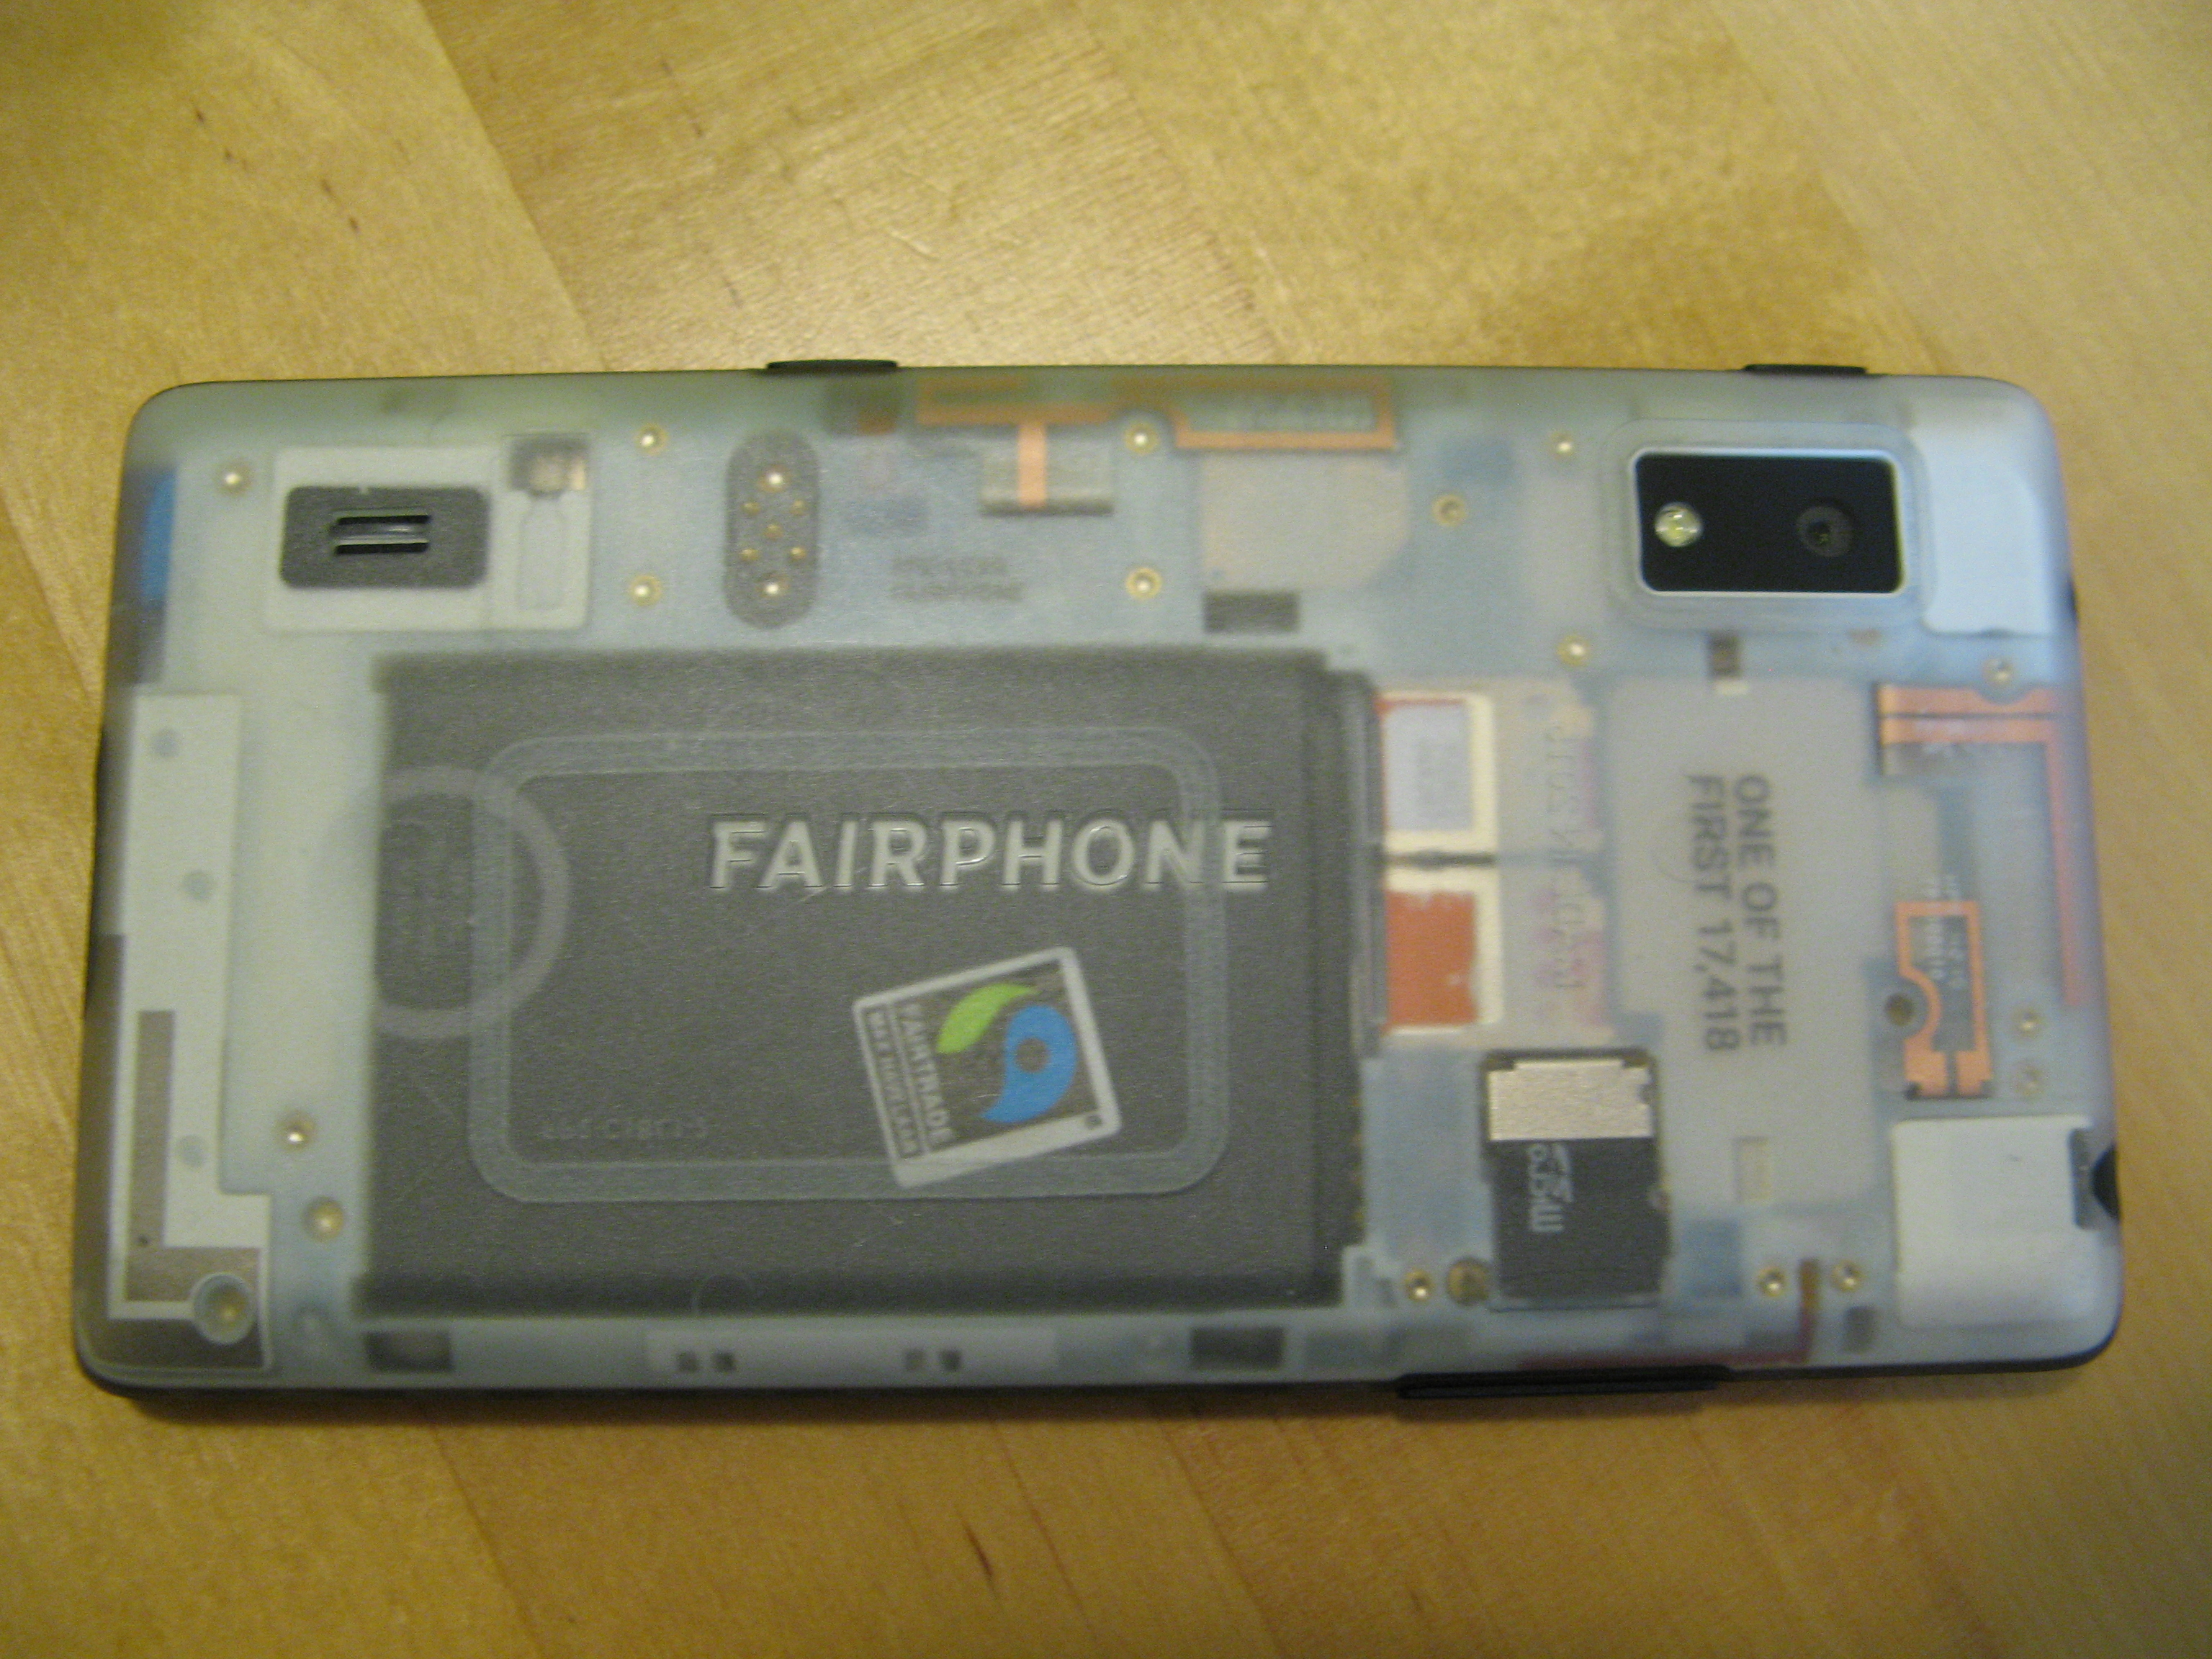 hebacksideofaairphone2withatransparentcover,showingitsmodulardesign